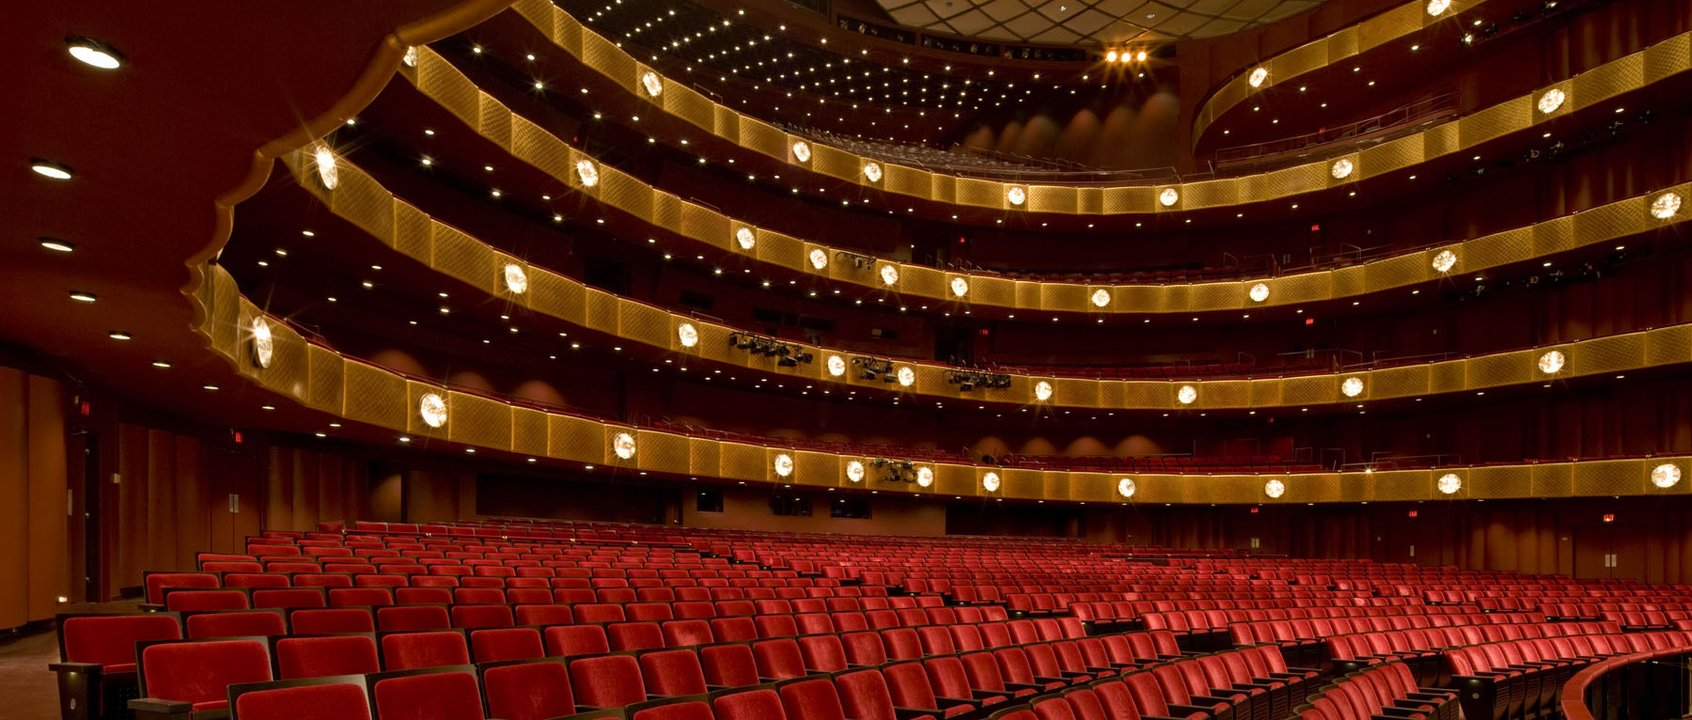 David H. Koch Theater | JCJ Architecture